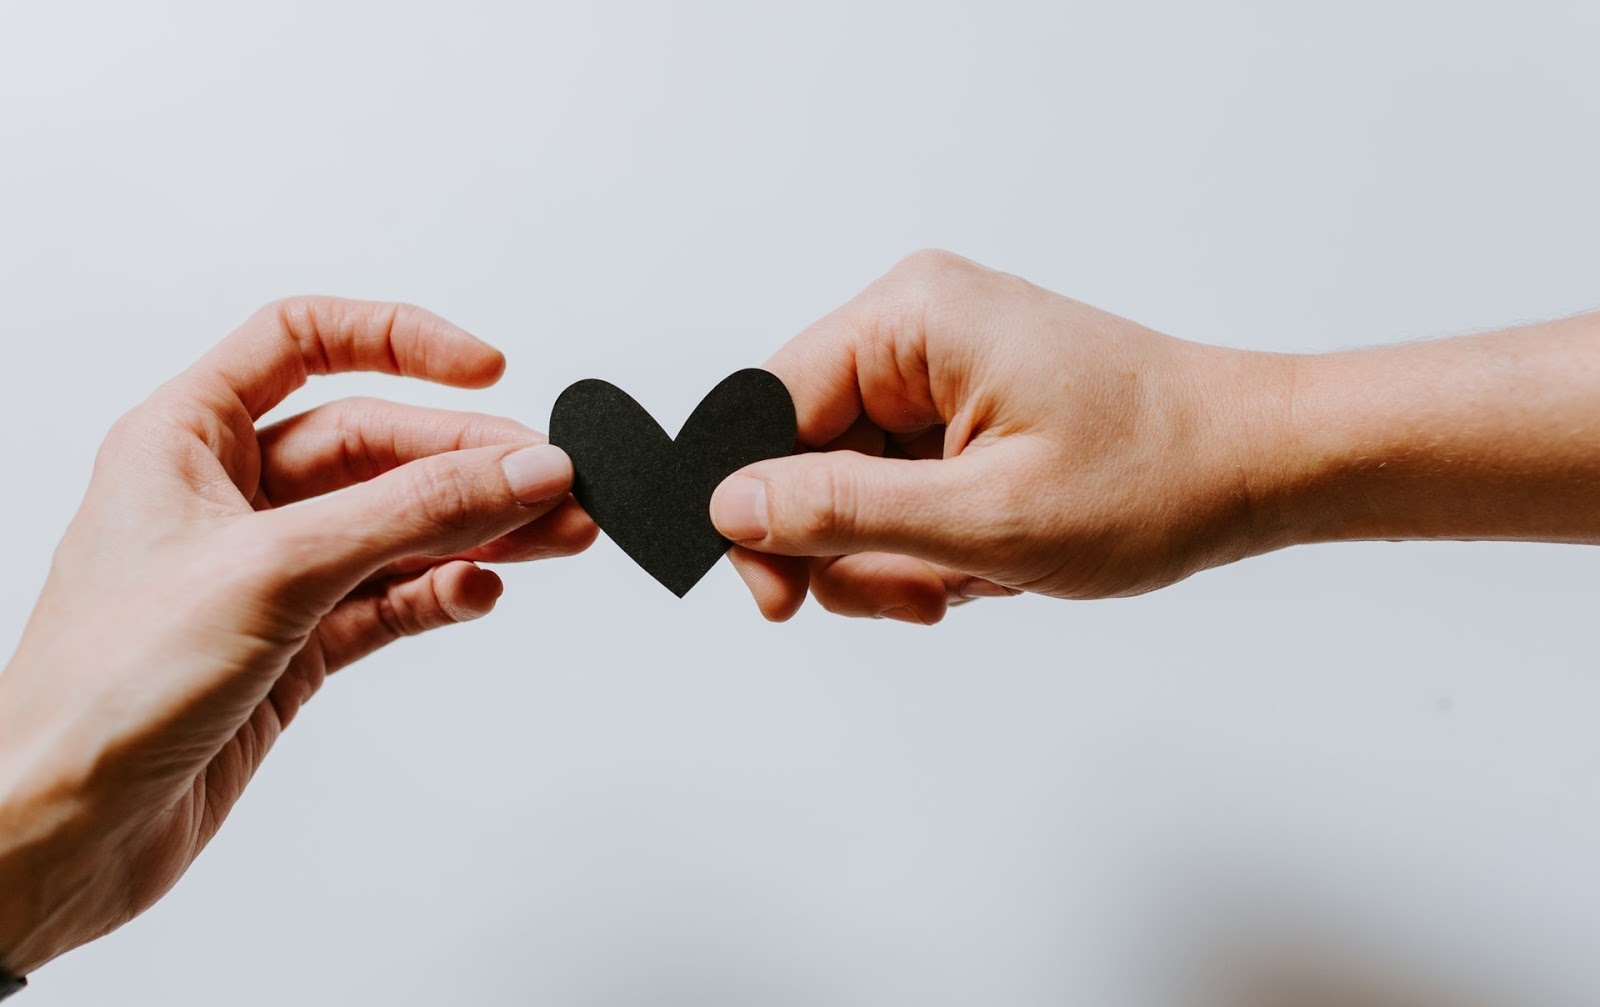 Two hands holding a paper heart.